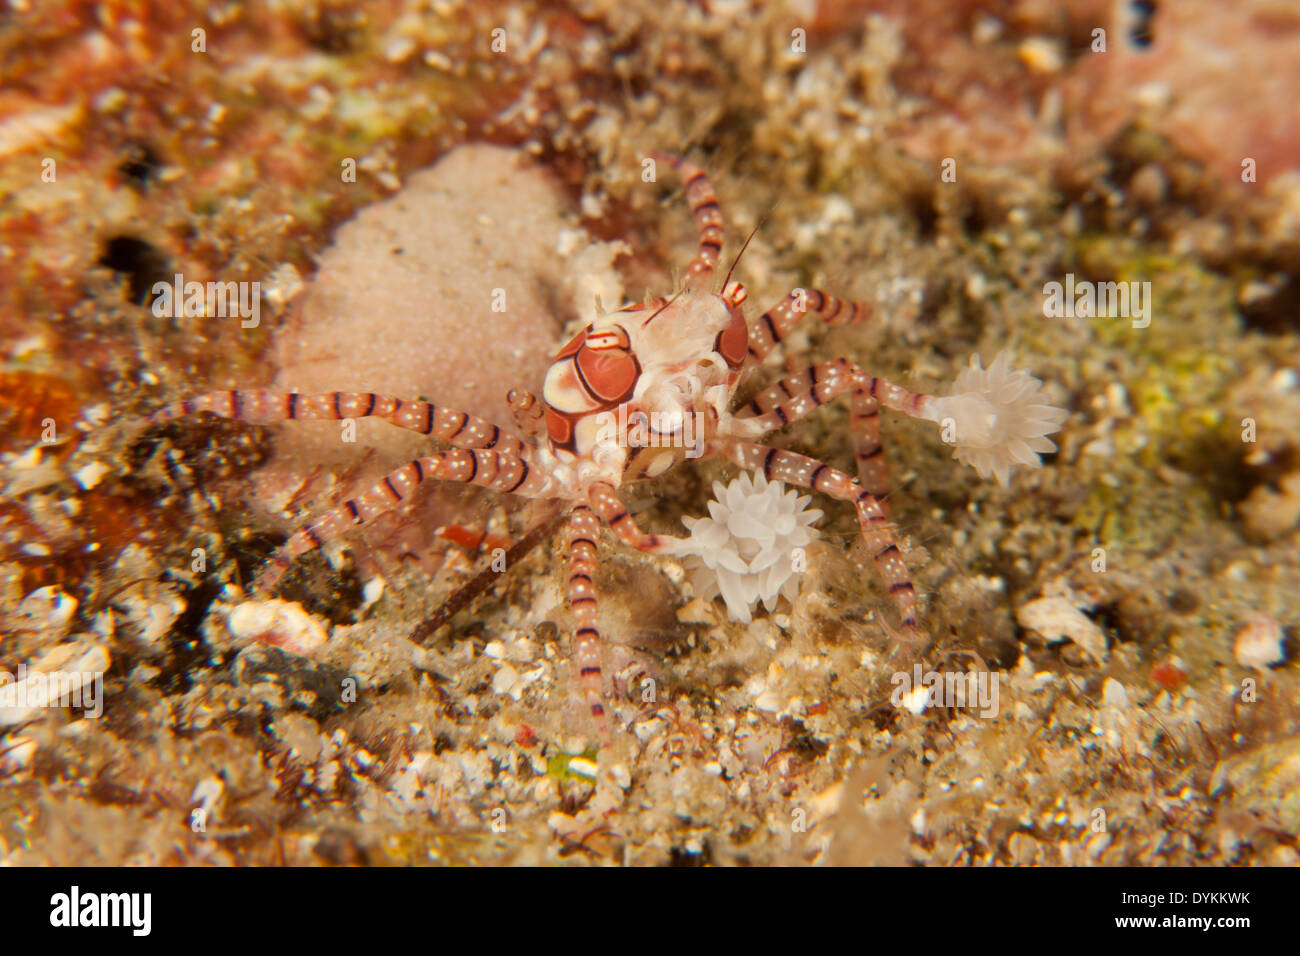 Mosaic Boxer Crab (Lybia tesselata) in the Lembeh Strait off North Sulawesi, Indonesia. - Stock Image